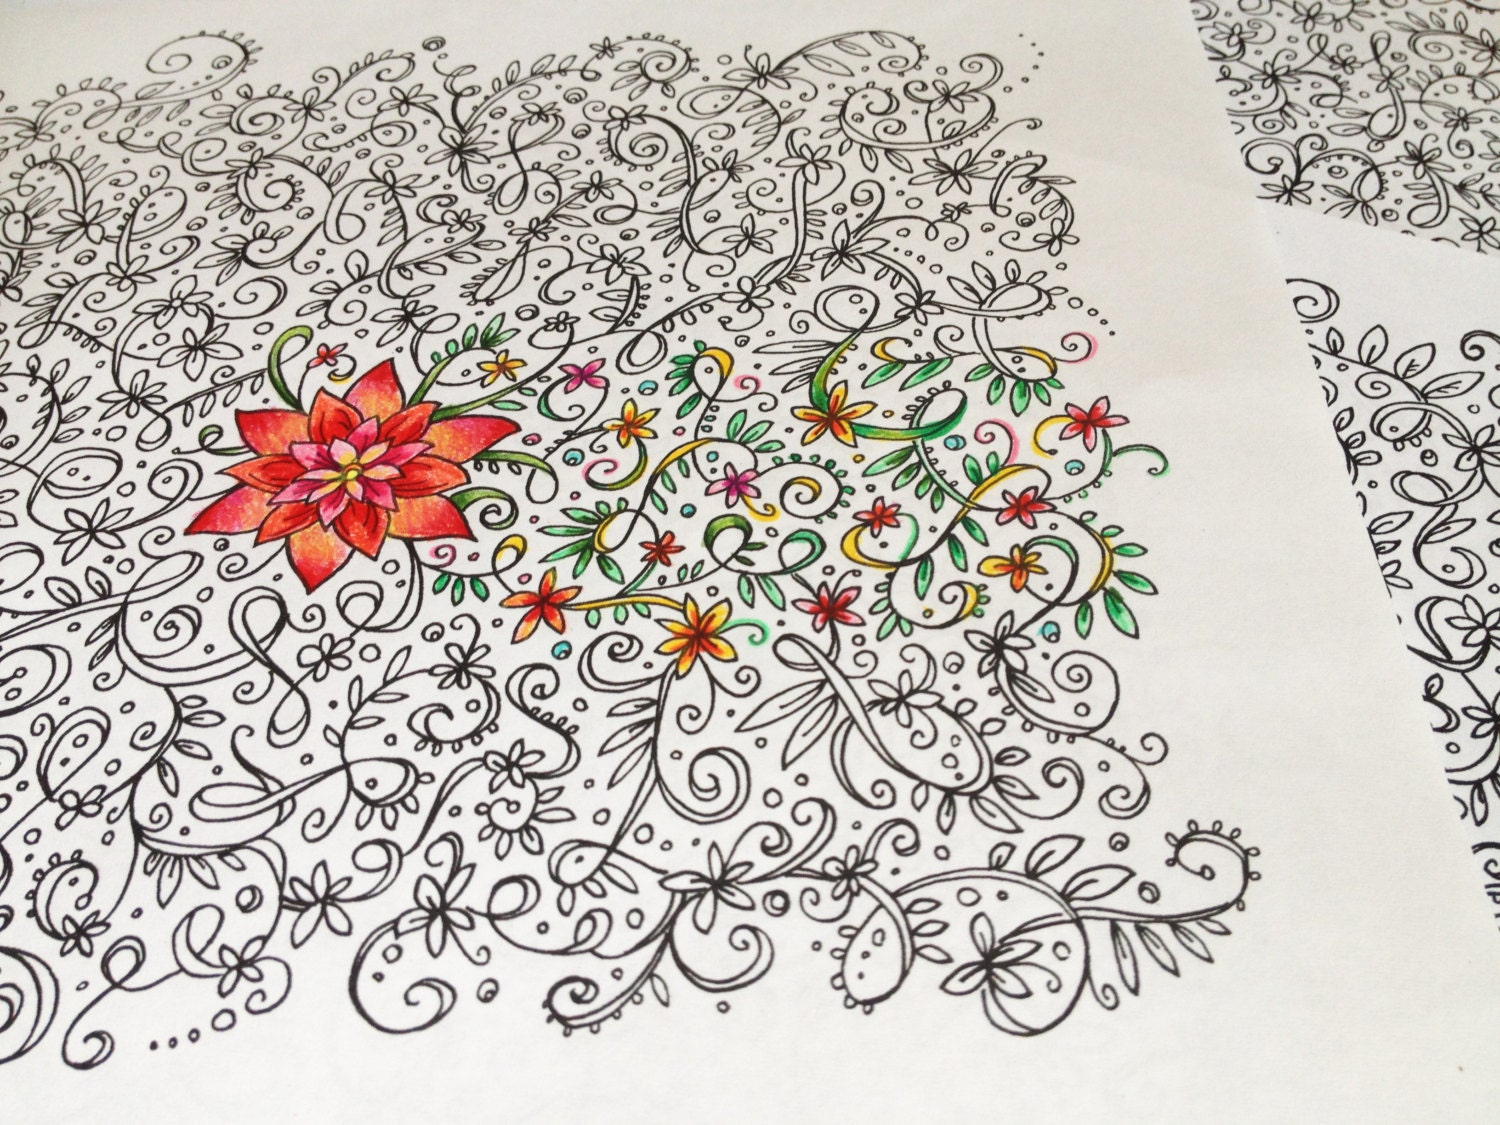 Colorful coloring book for adults download - Flowers On The Vine Adult Coloring Book Single Page Instant Download Printable Floral